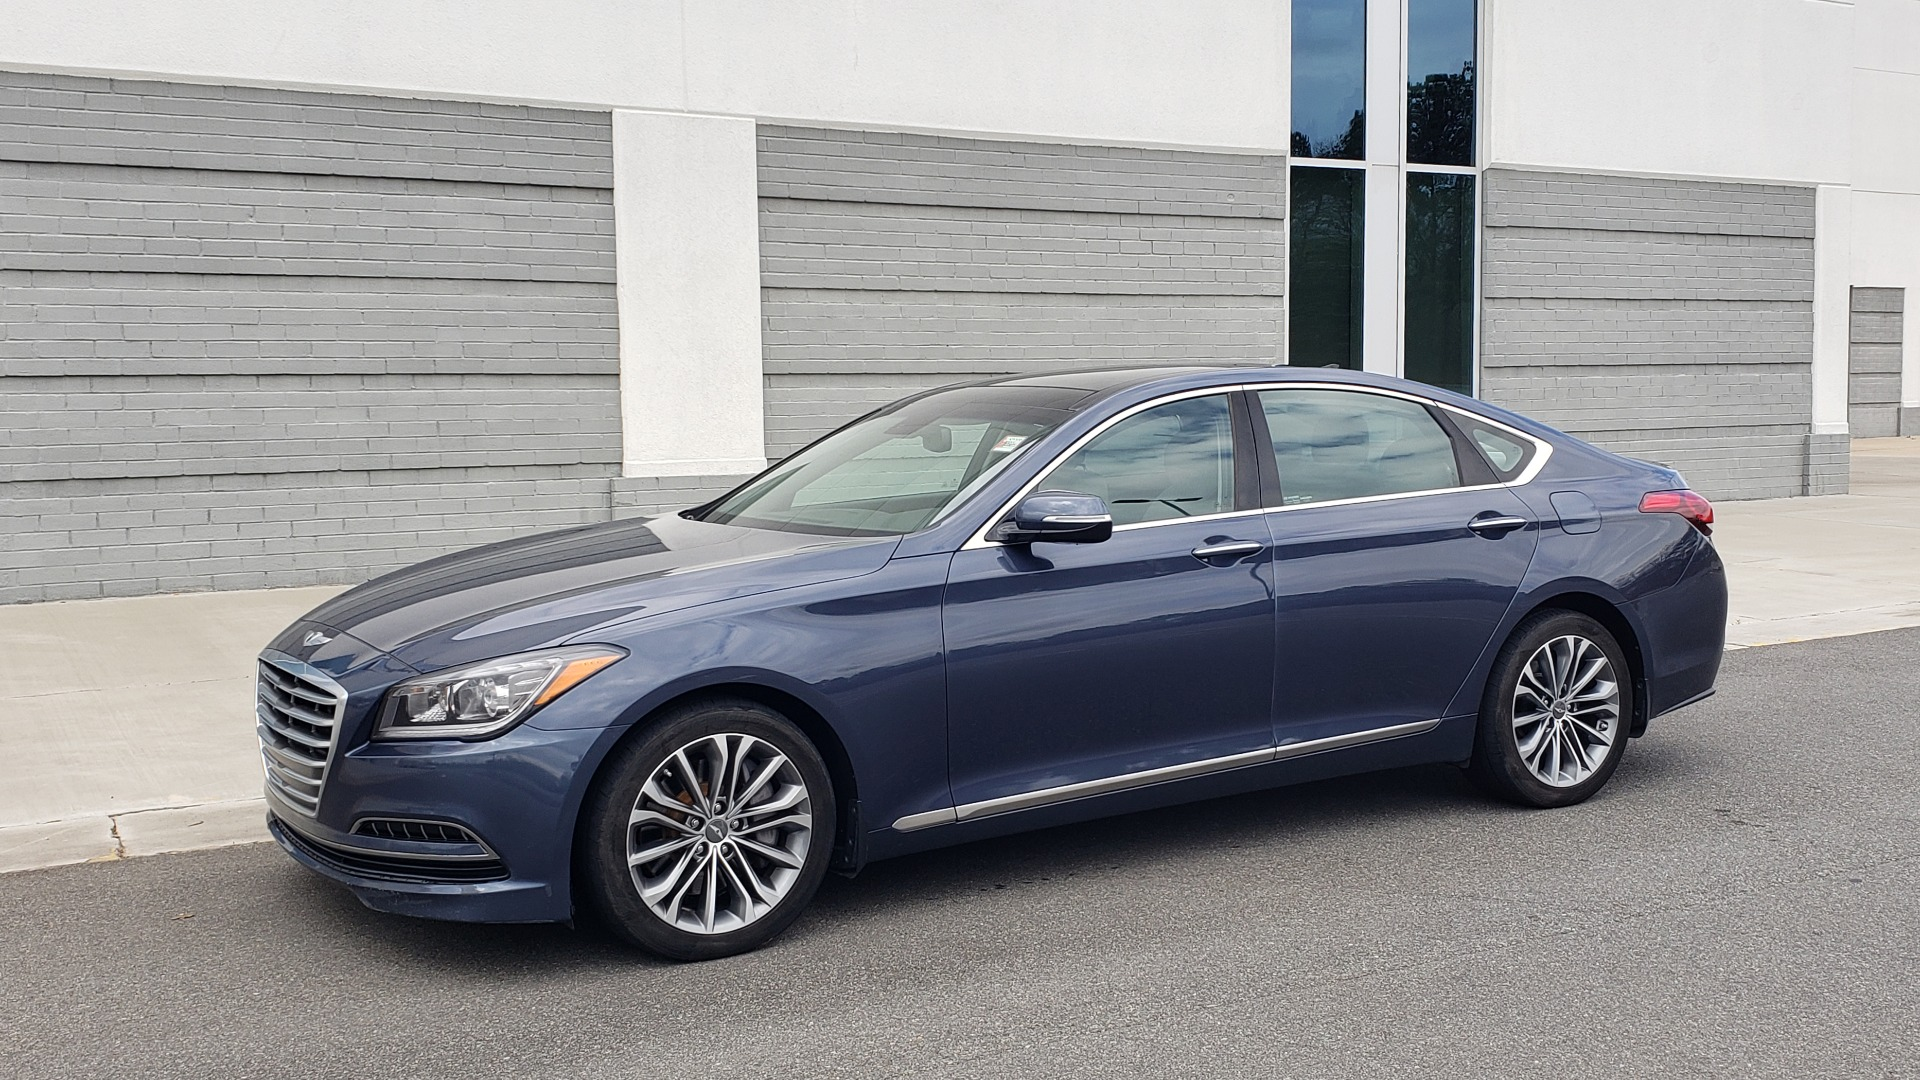 Used 2015 Hyundai GENESIS 3.8L V6 / RWD / SIGNATURE PKG / PANO-ROOF / REARVIEW for sale Sold at Formula Imports in Charlotte NC 28227 2